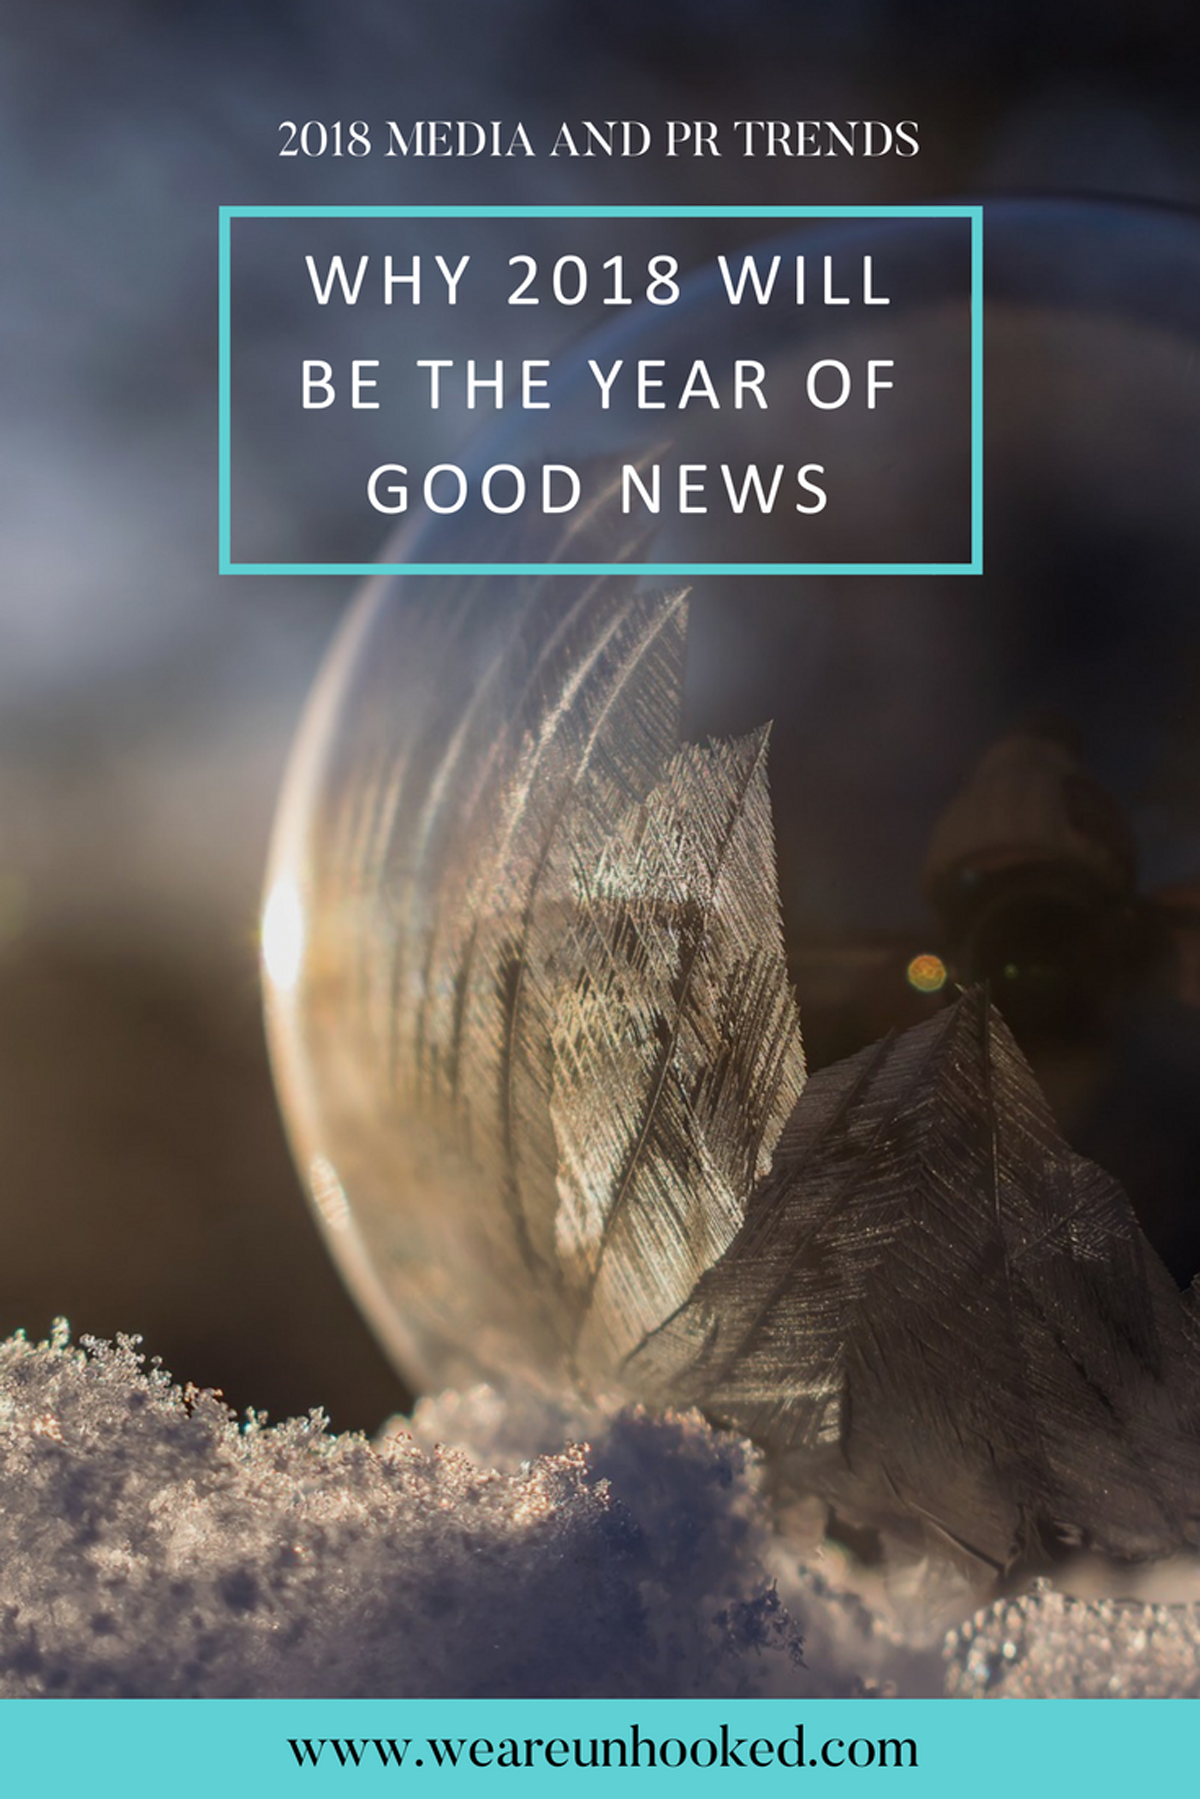 PR trends 2018 blog: Why 2018 will be the year of good news and how brands can take advantage of this PR trend